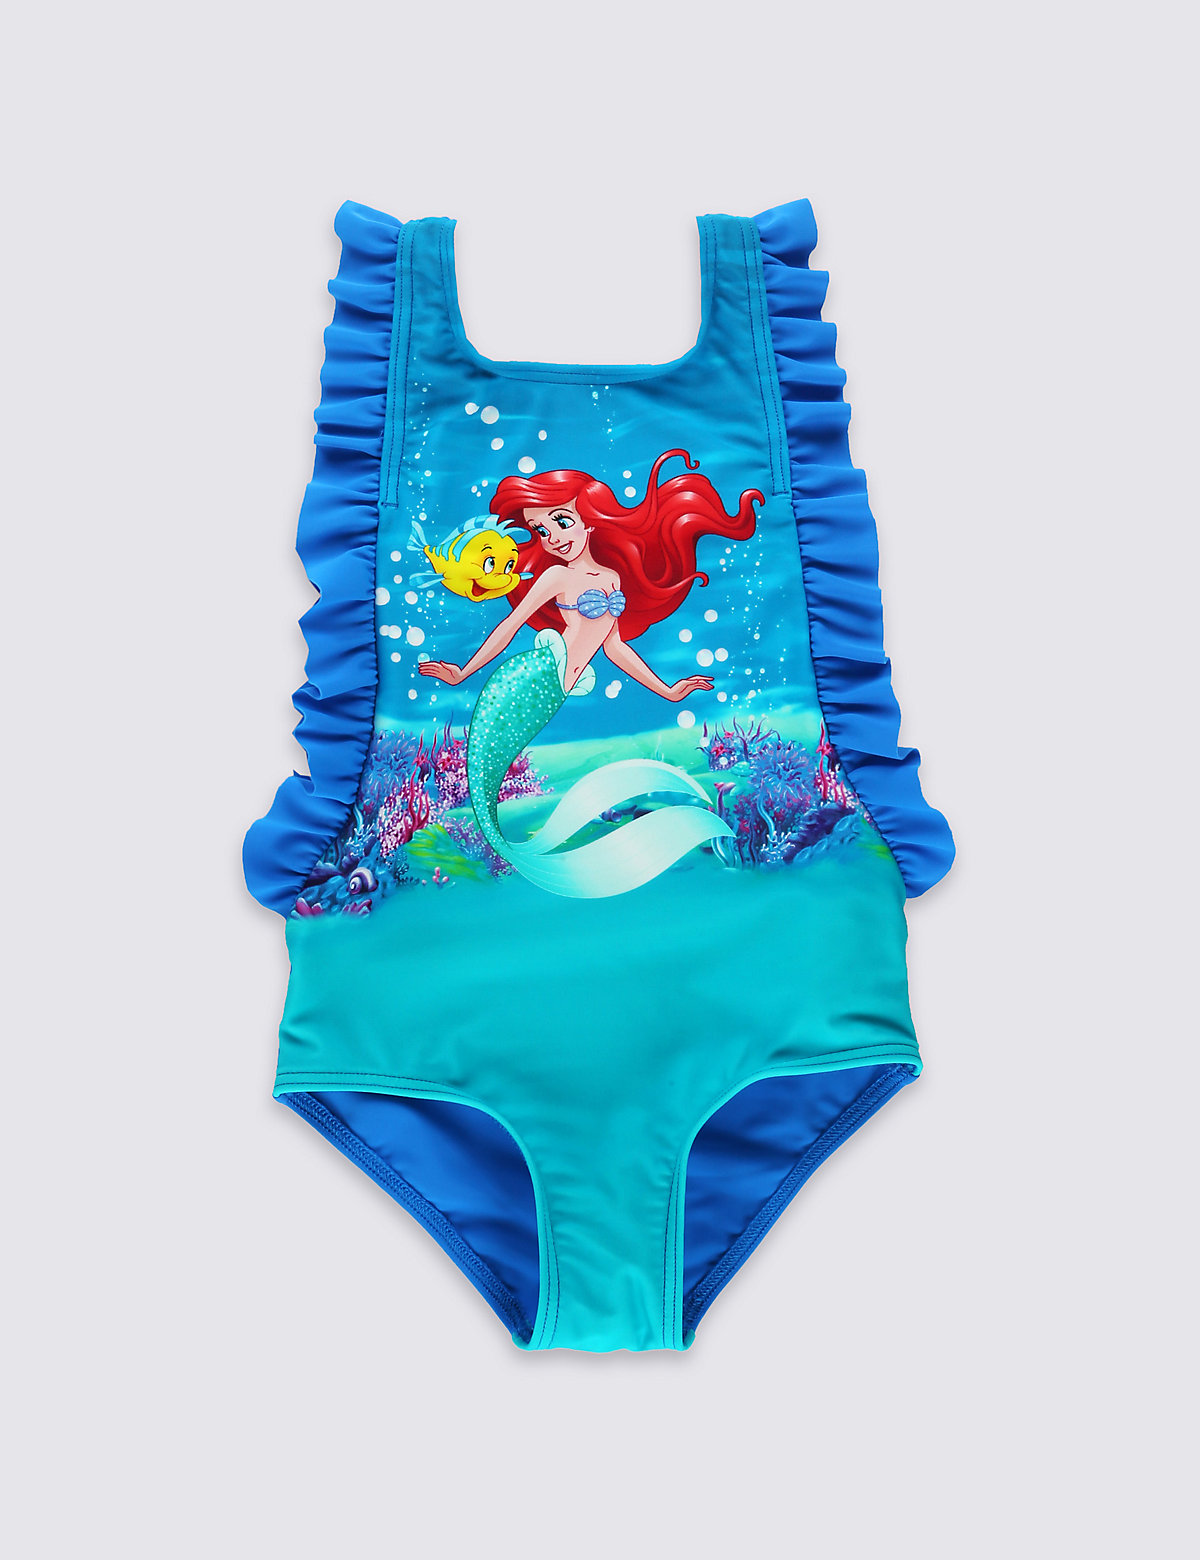 Disney Princess Ariel Swimsuit with Lycra Xtra Life (05 Years)